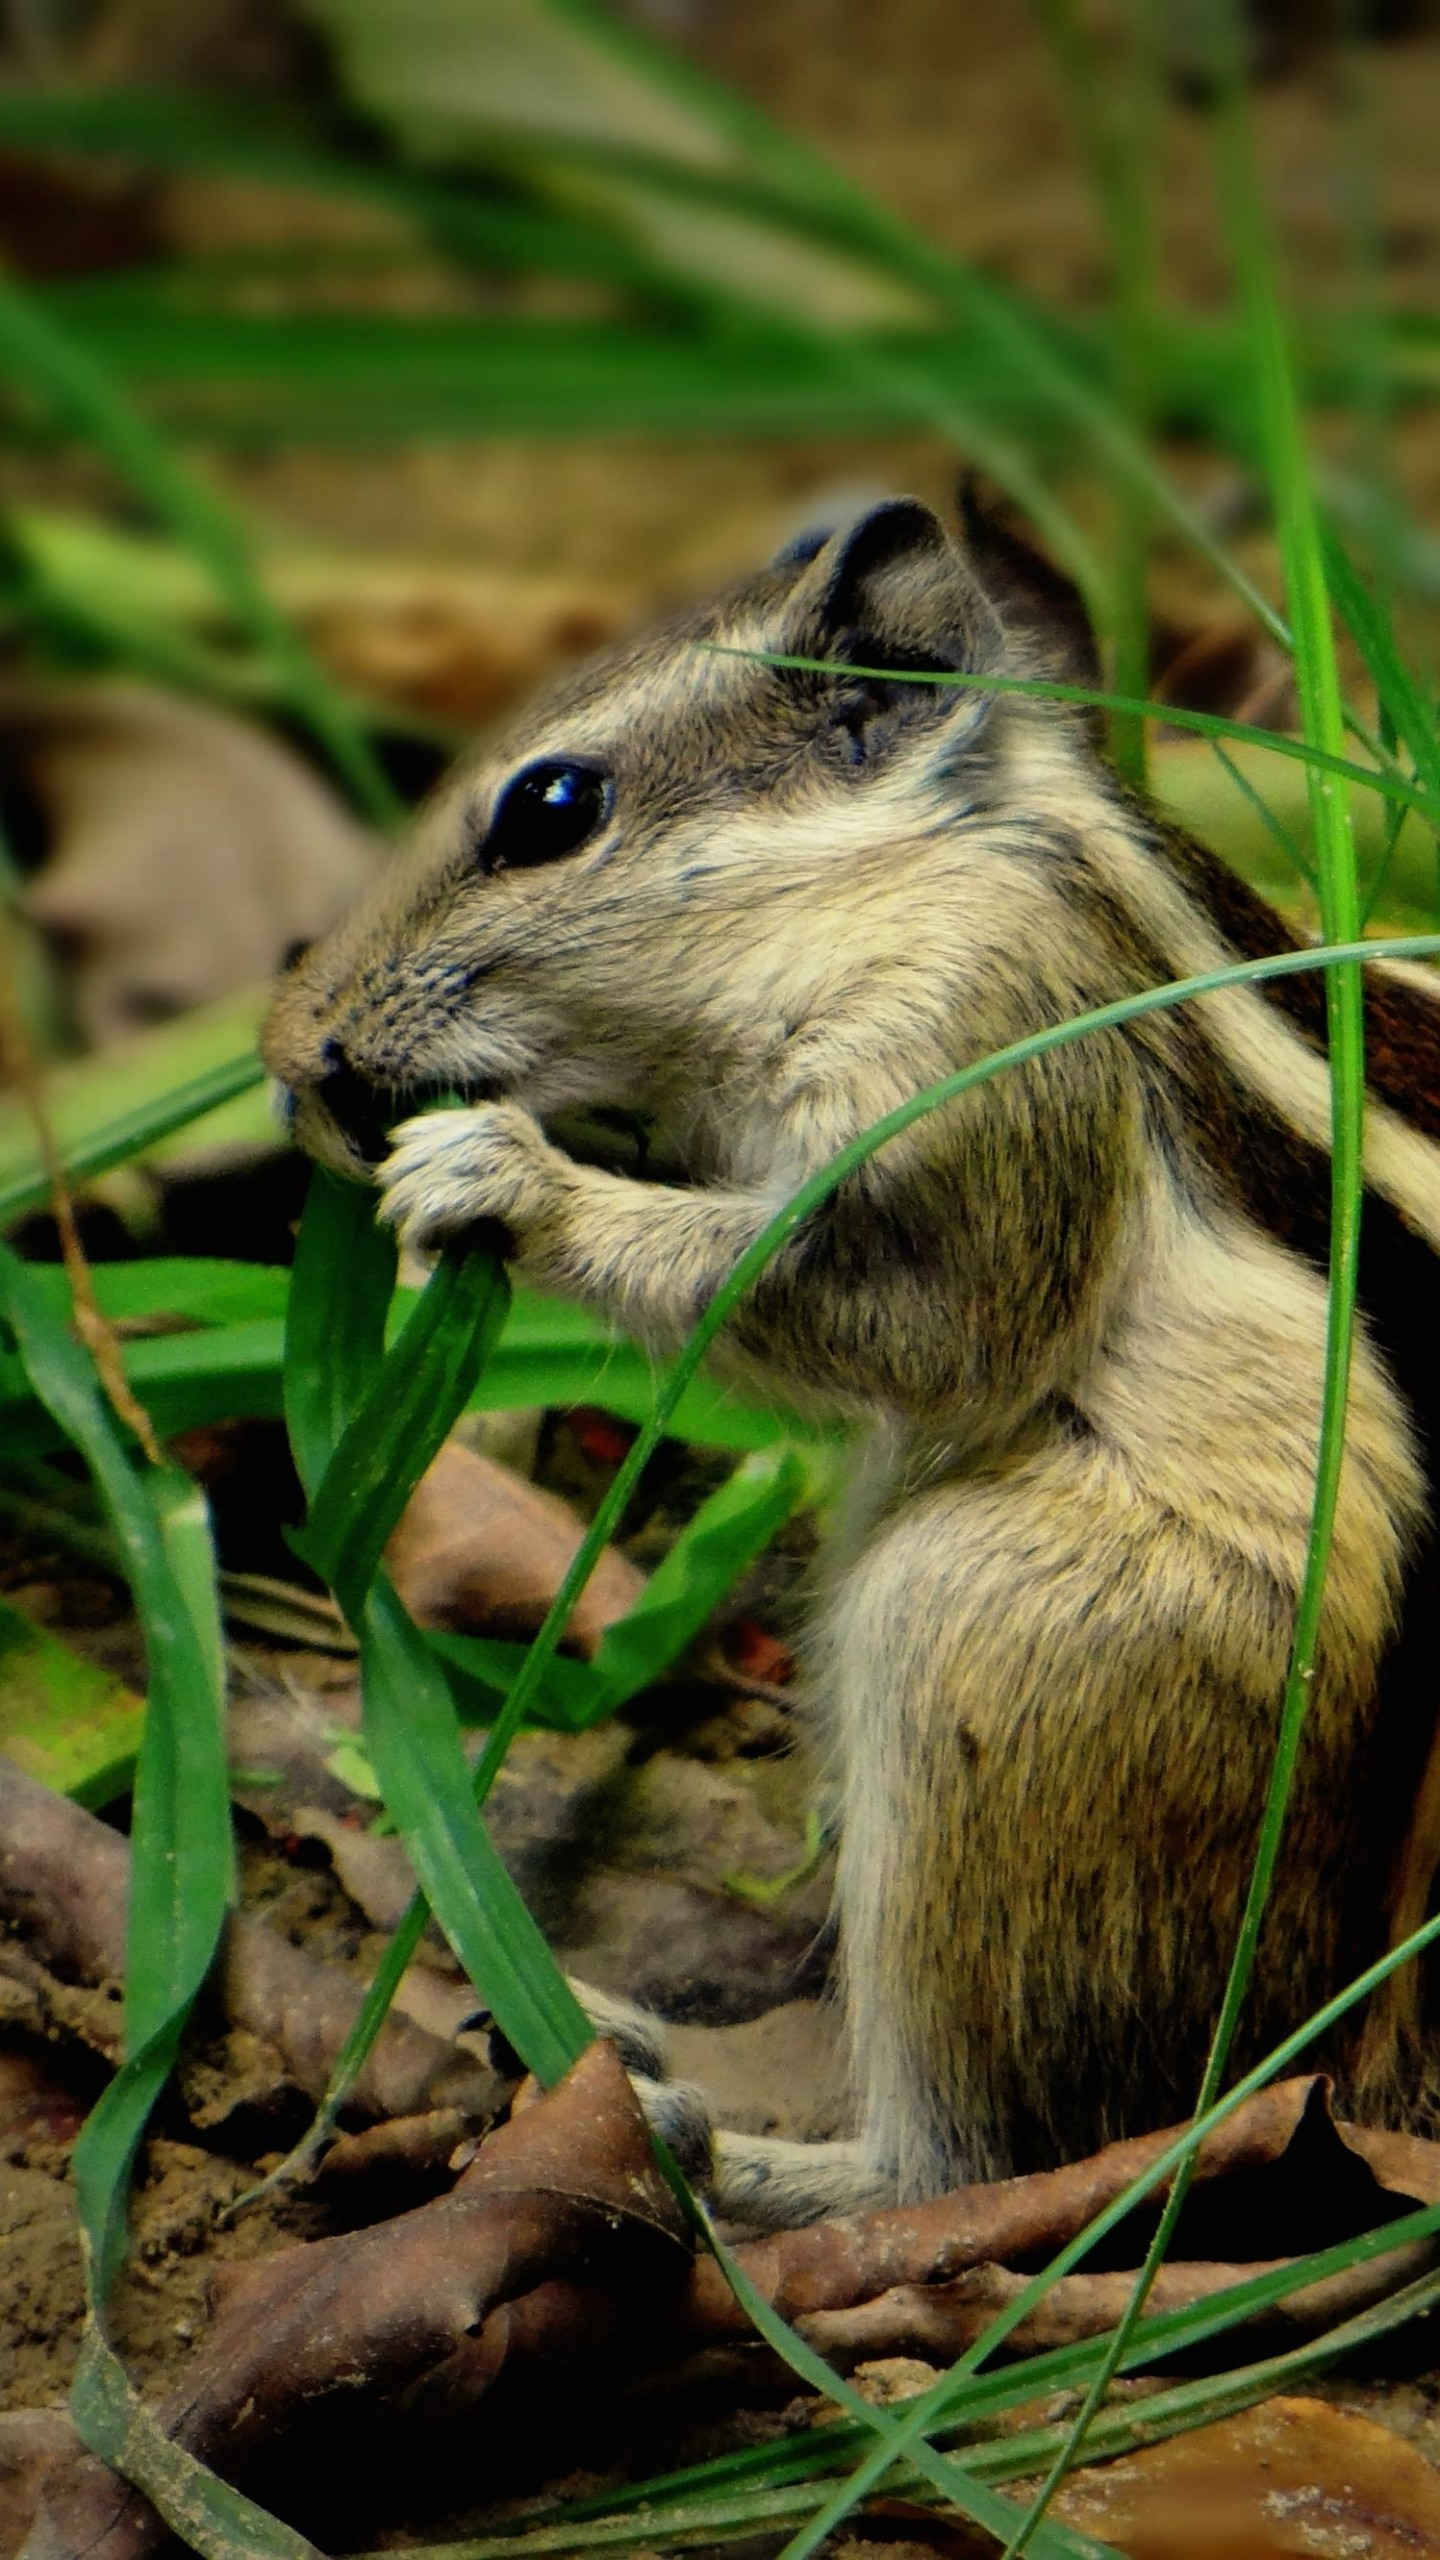 Chipmunk In The Grass Wallpaper for SAMSUNG Galaxy S6